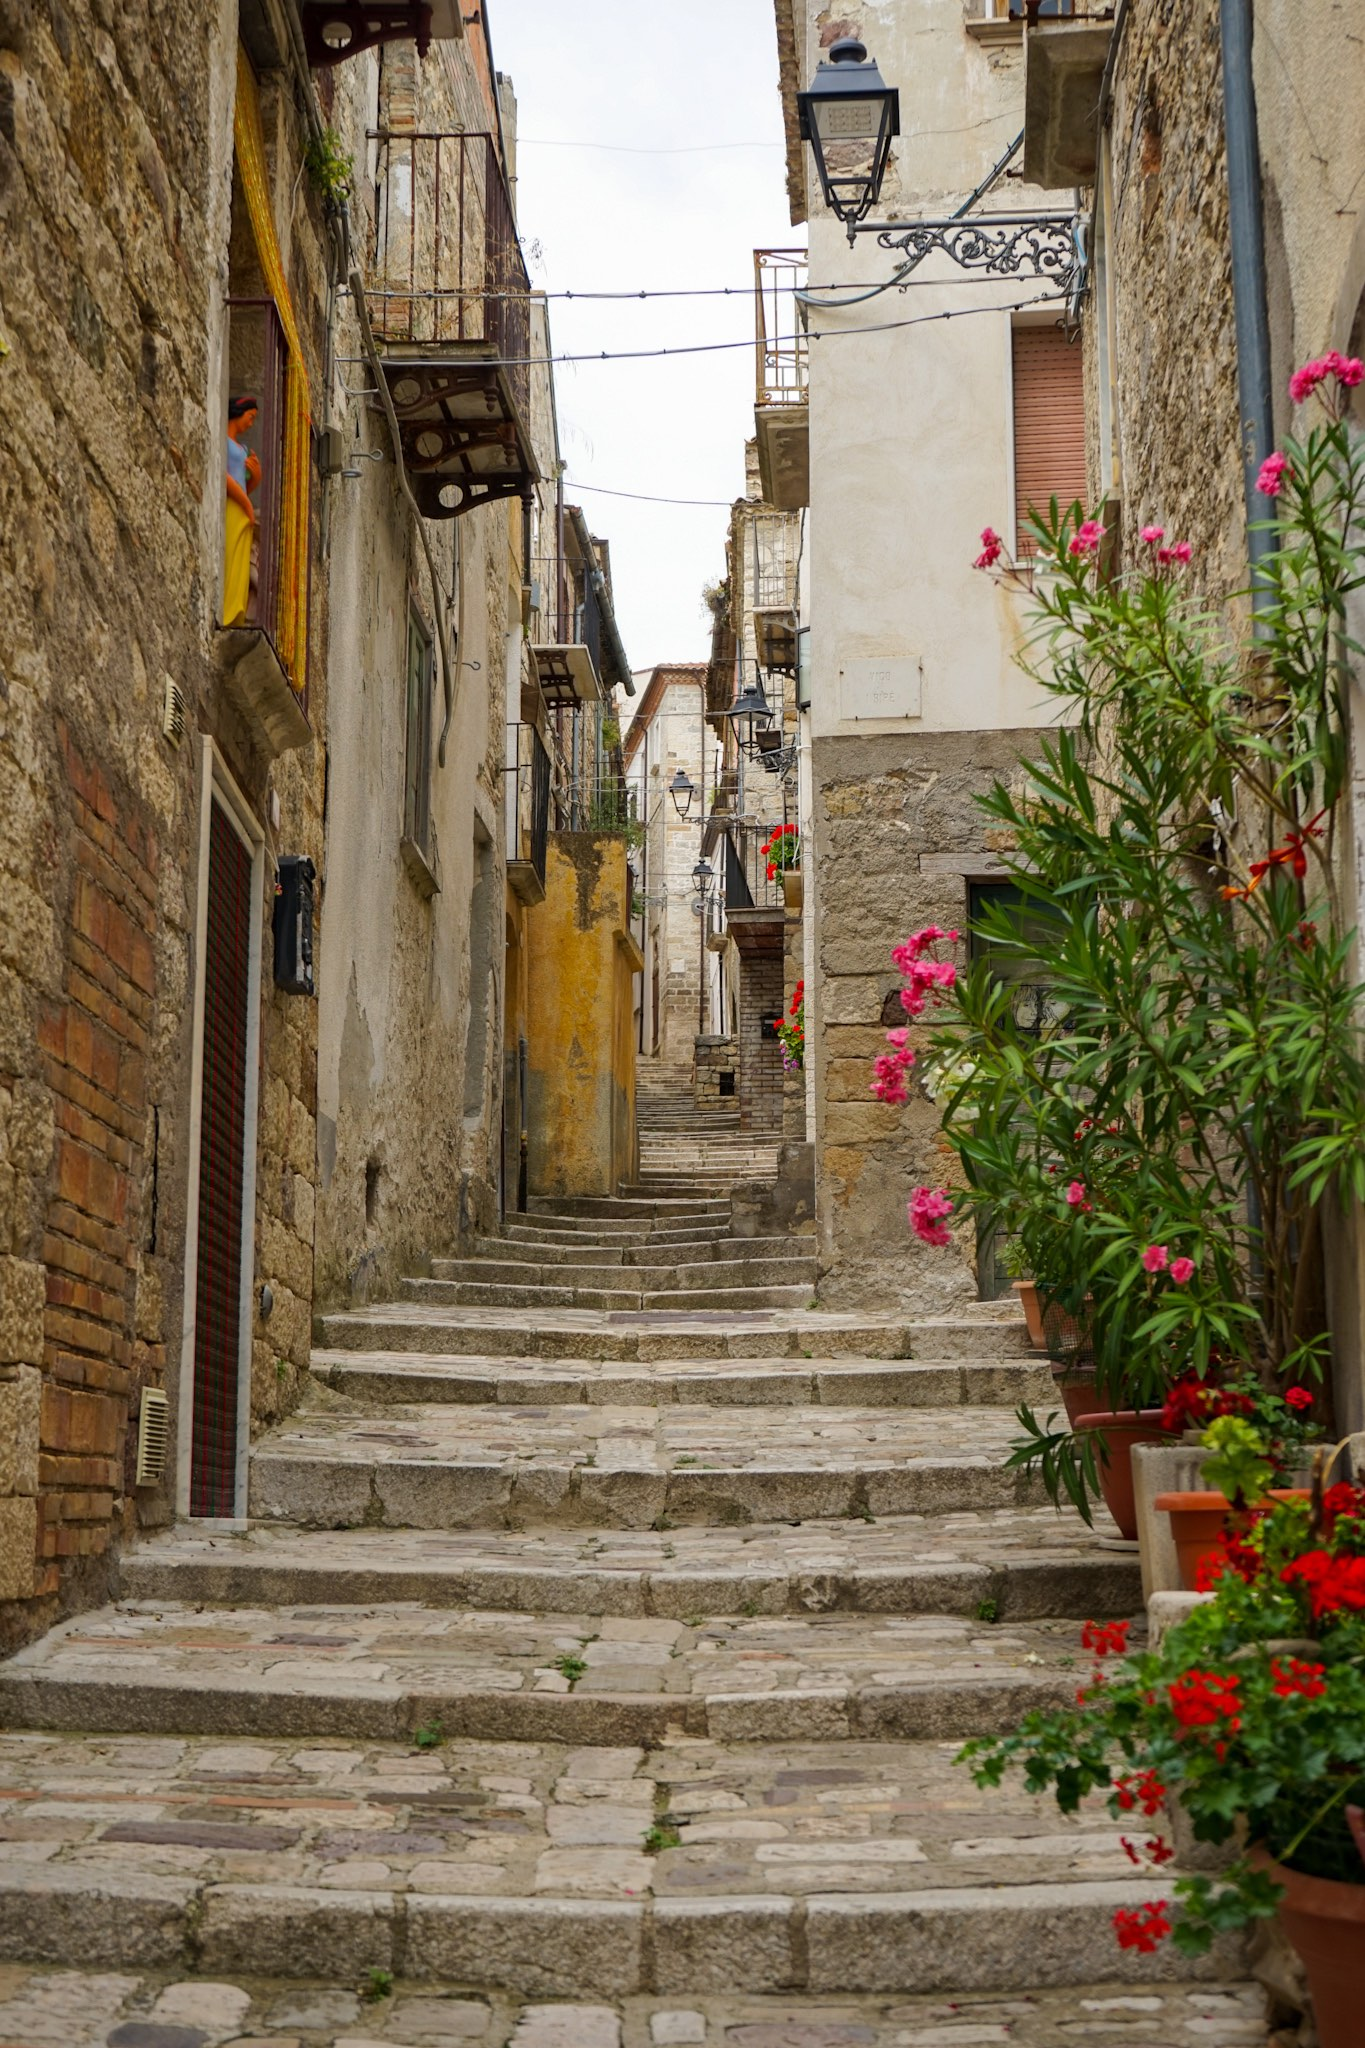 The village of Civitacampomarano, in the Italian region of Molise